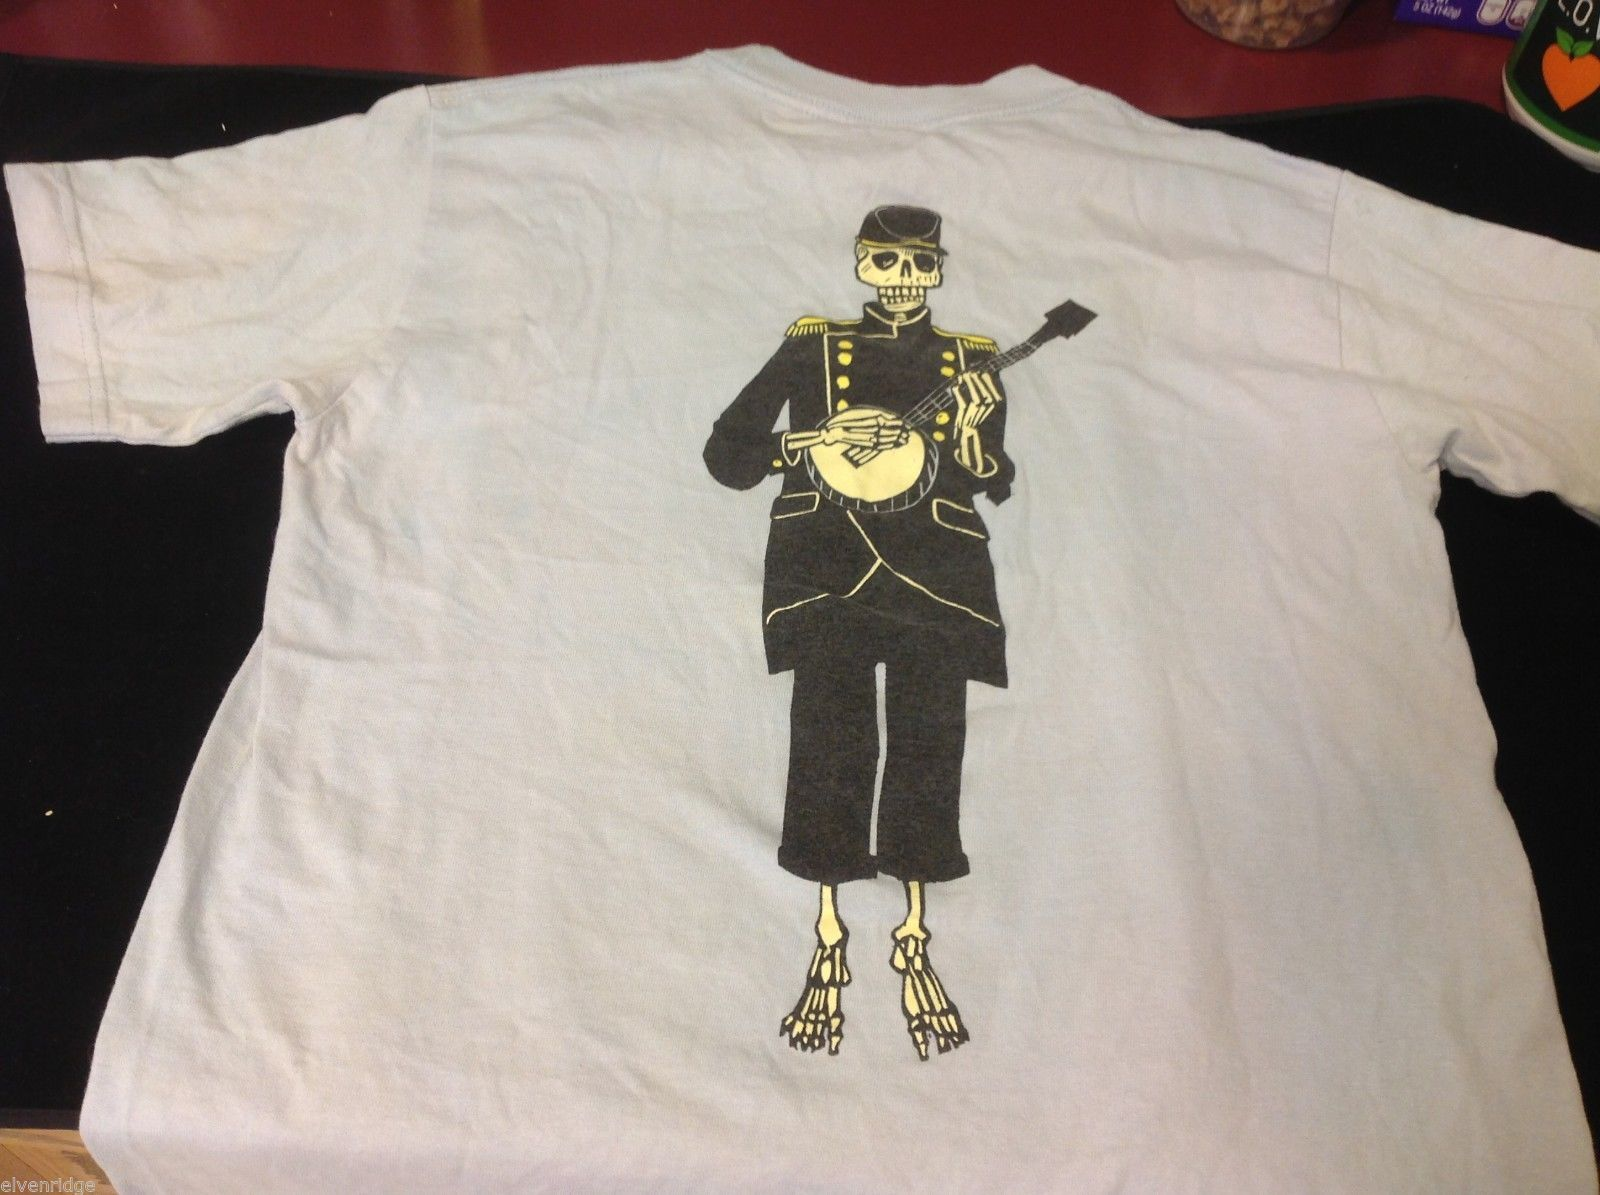 Vintage Chocolate blue t shirt with skeleton playing banjo size small